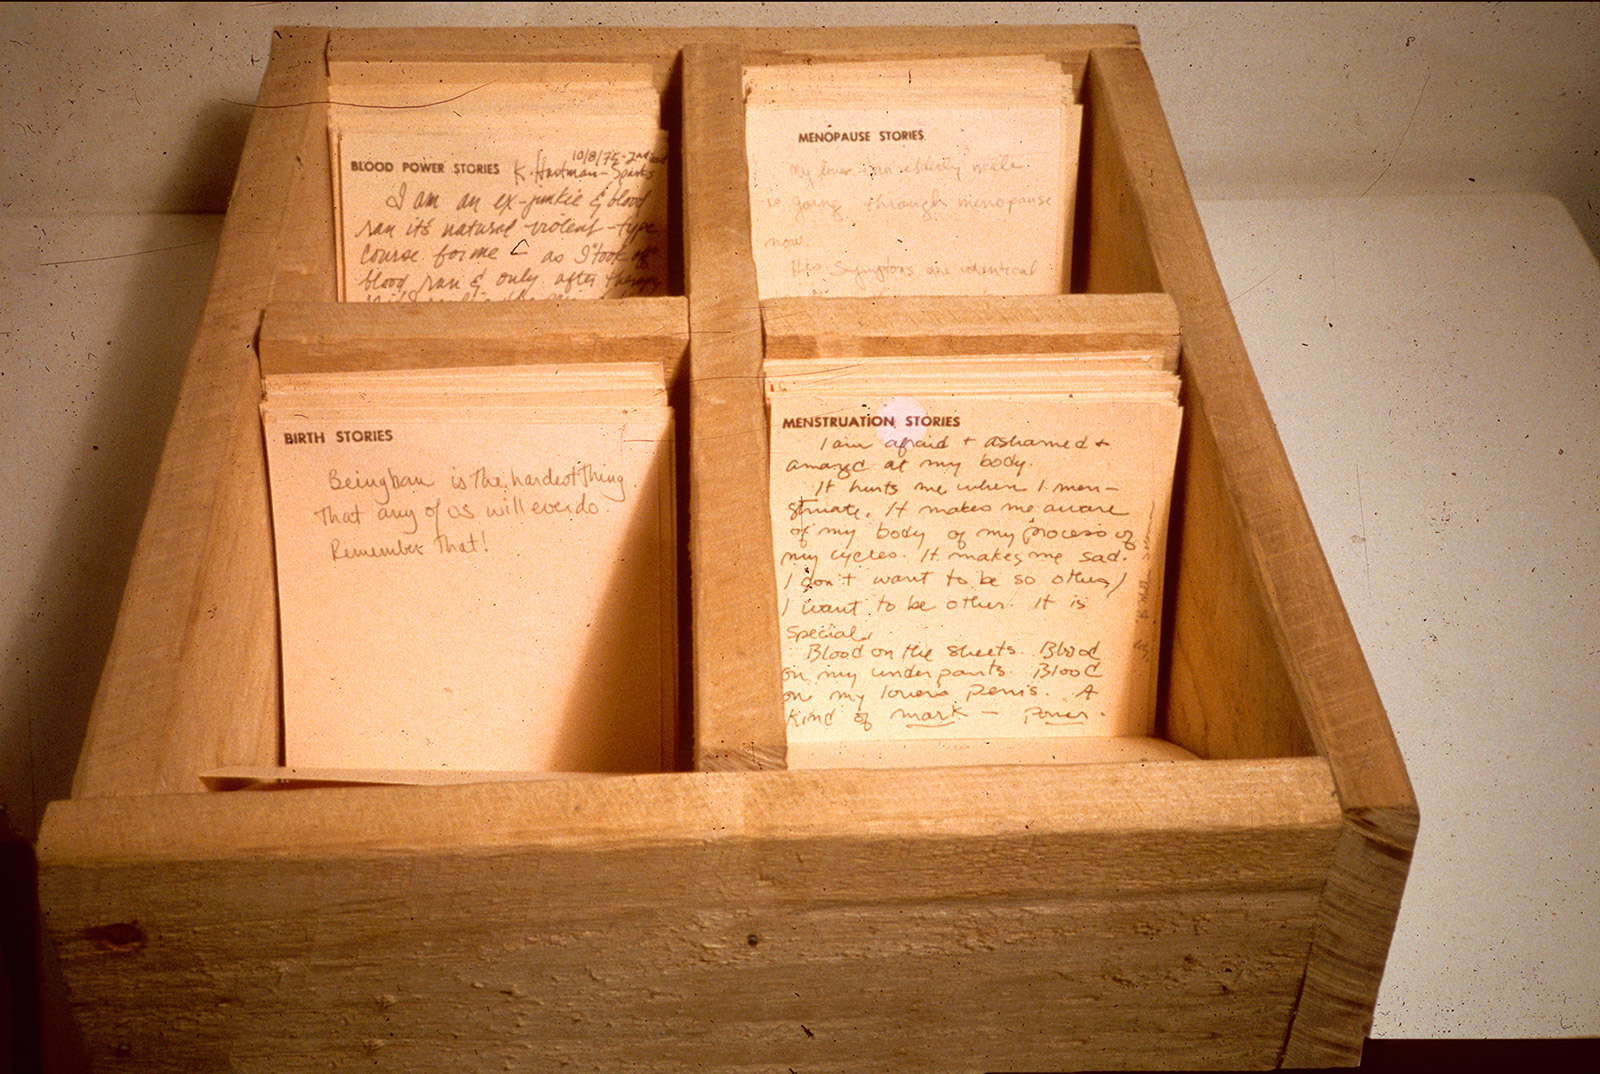 Mary Beth Edelsen, Story Gathering Boxes, VoCA Journal